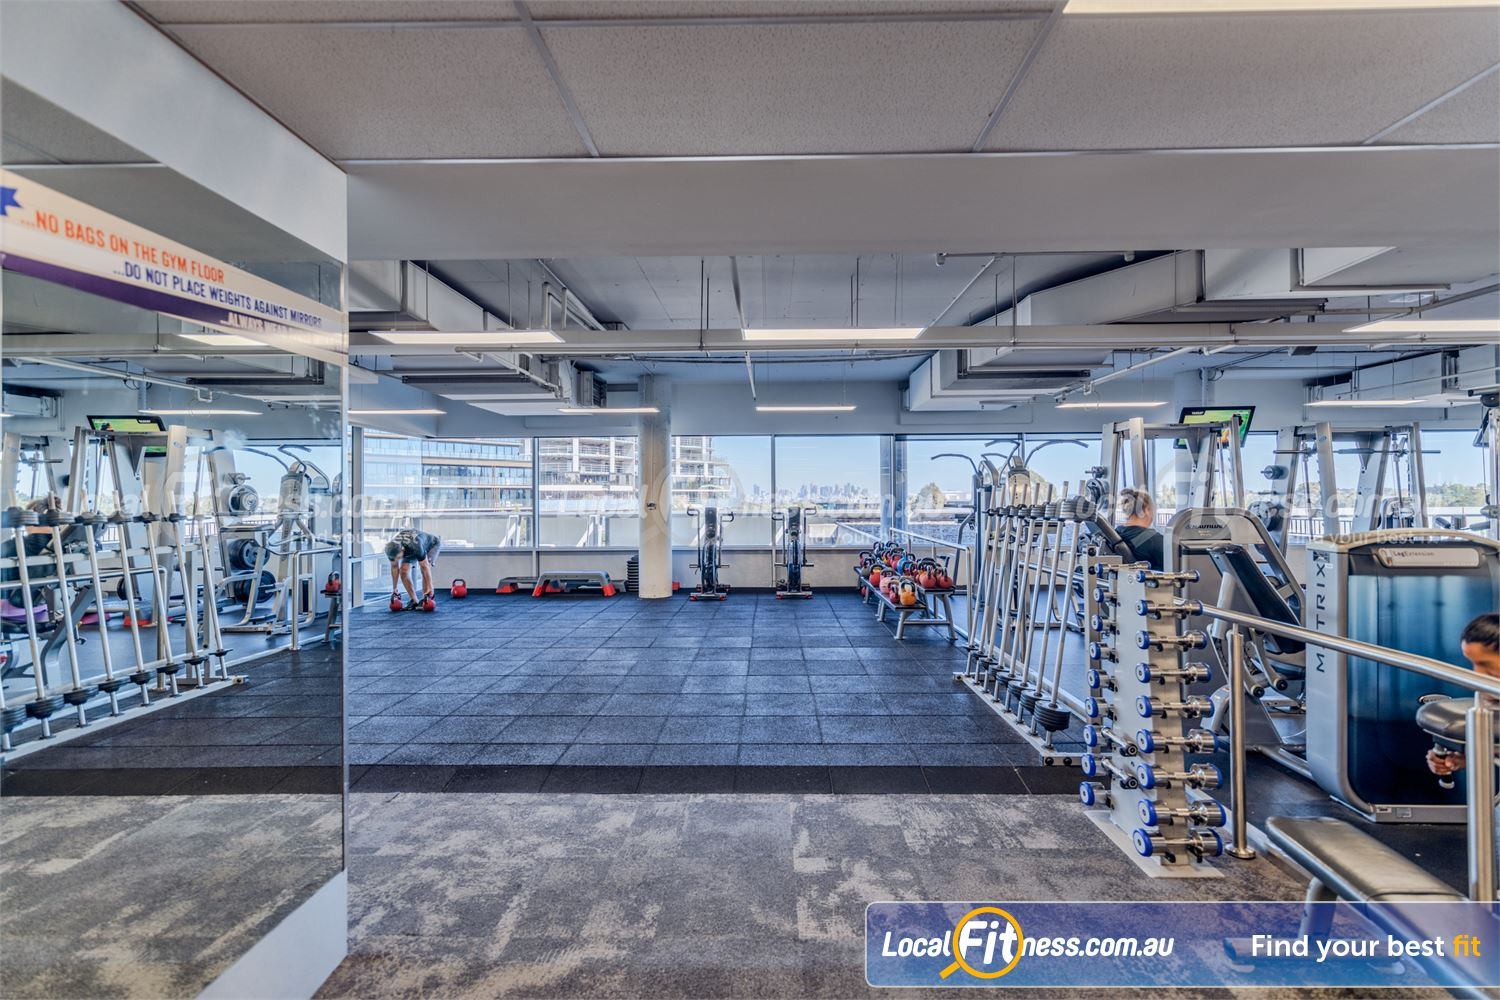 Goodlife Health Clubs Near Canterbury Our Camberwell gym includes 2400 sq/m of fitness under one roof.